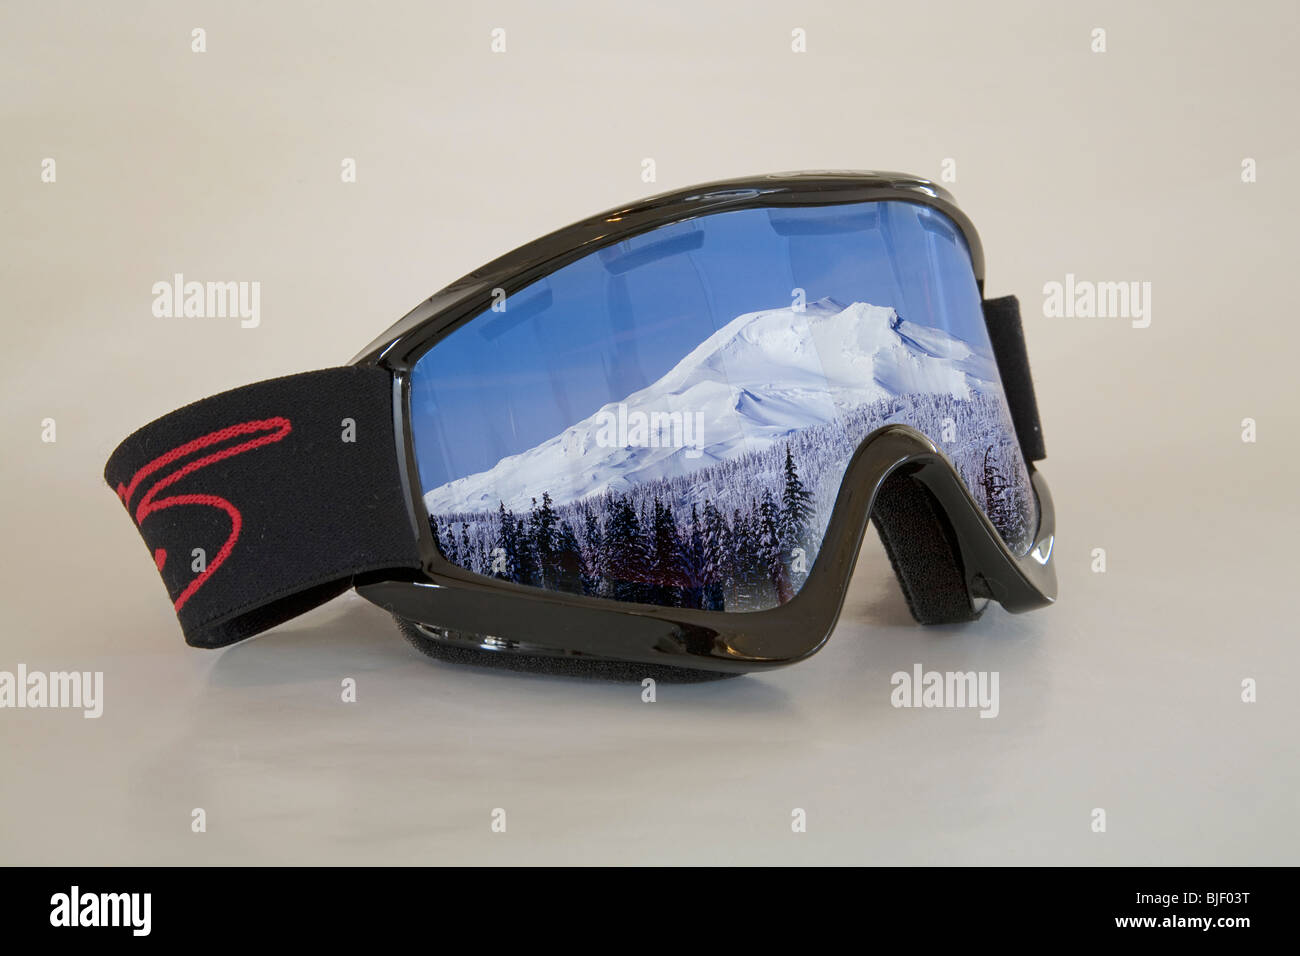 Ski goggles with the reflection of a snow capped peak in them - Stock Image